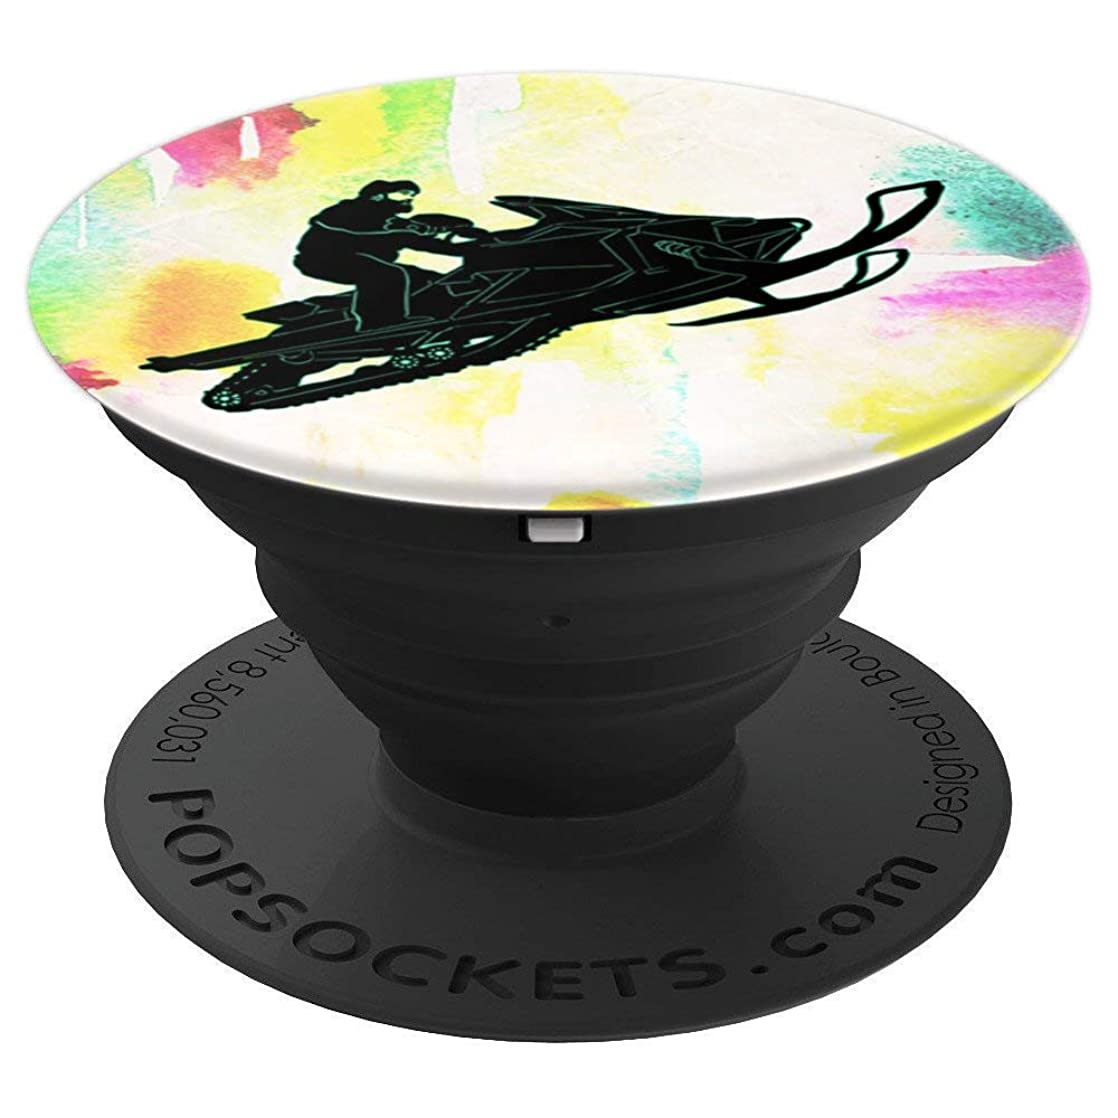 Snowmobile For Men Snow Sled Winter Travel Theme on Rainbow - PopSockets Grip and Stand for Phones and Tablets wohkvzgz37014